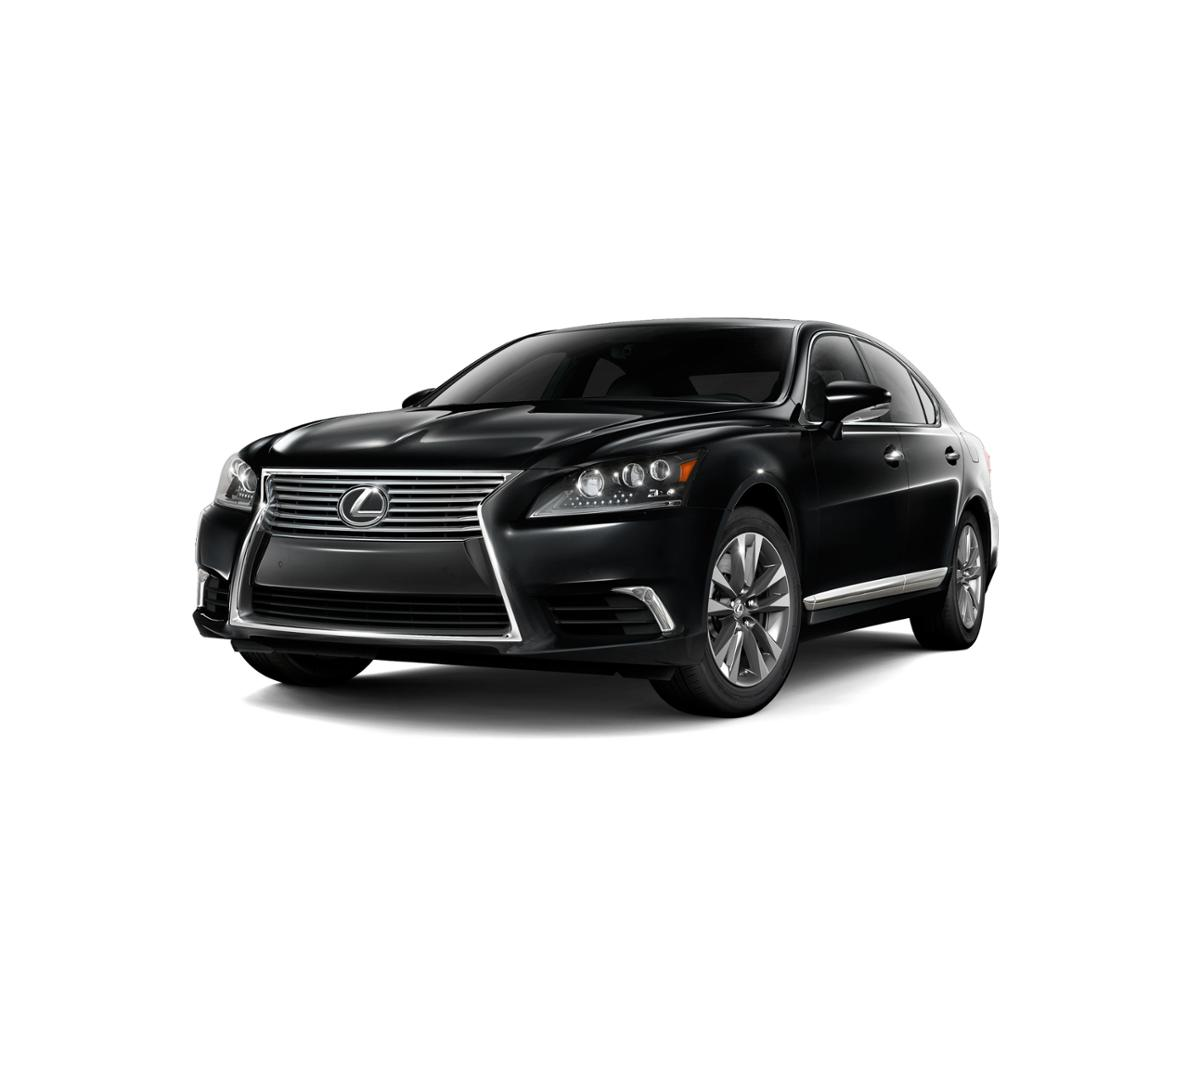 2017 Lexus LS 460 Vehicle Photo in Santa Monica, CA 90404